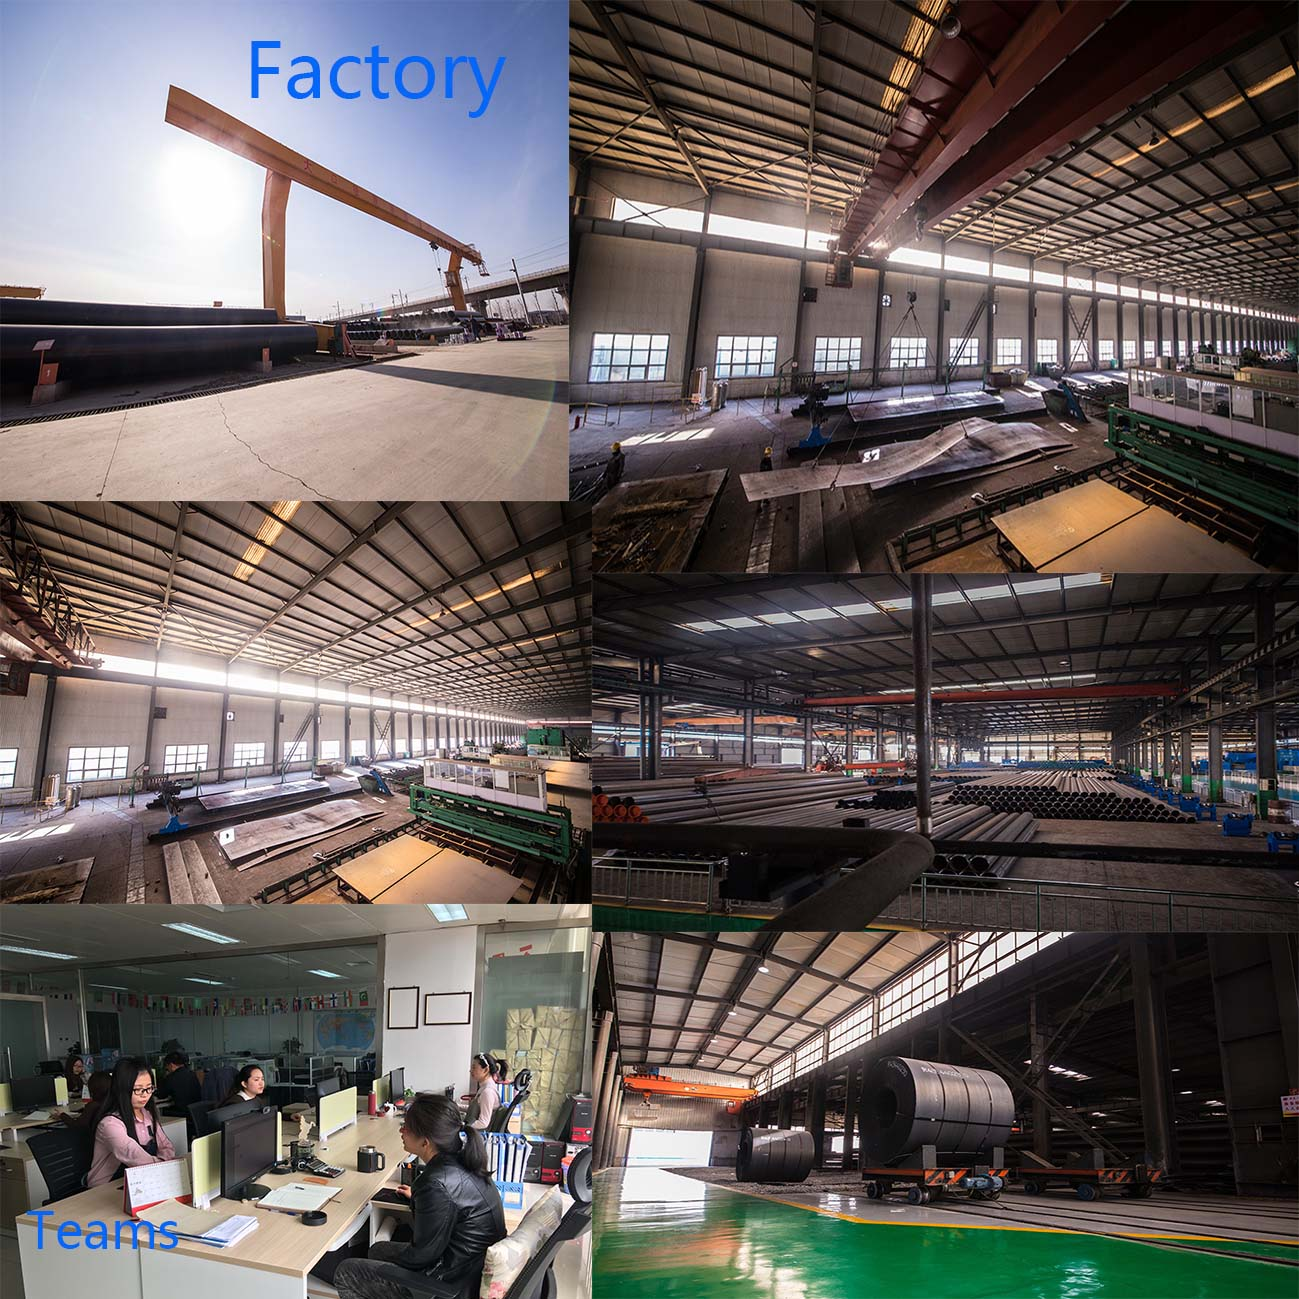 factory and team